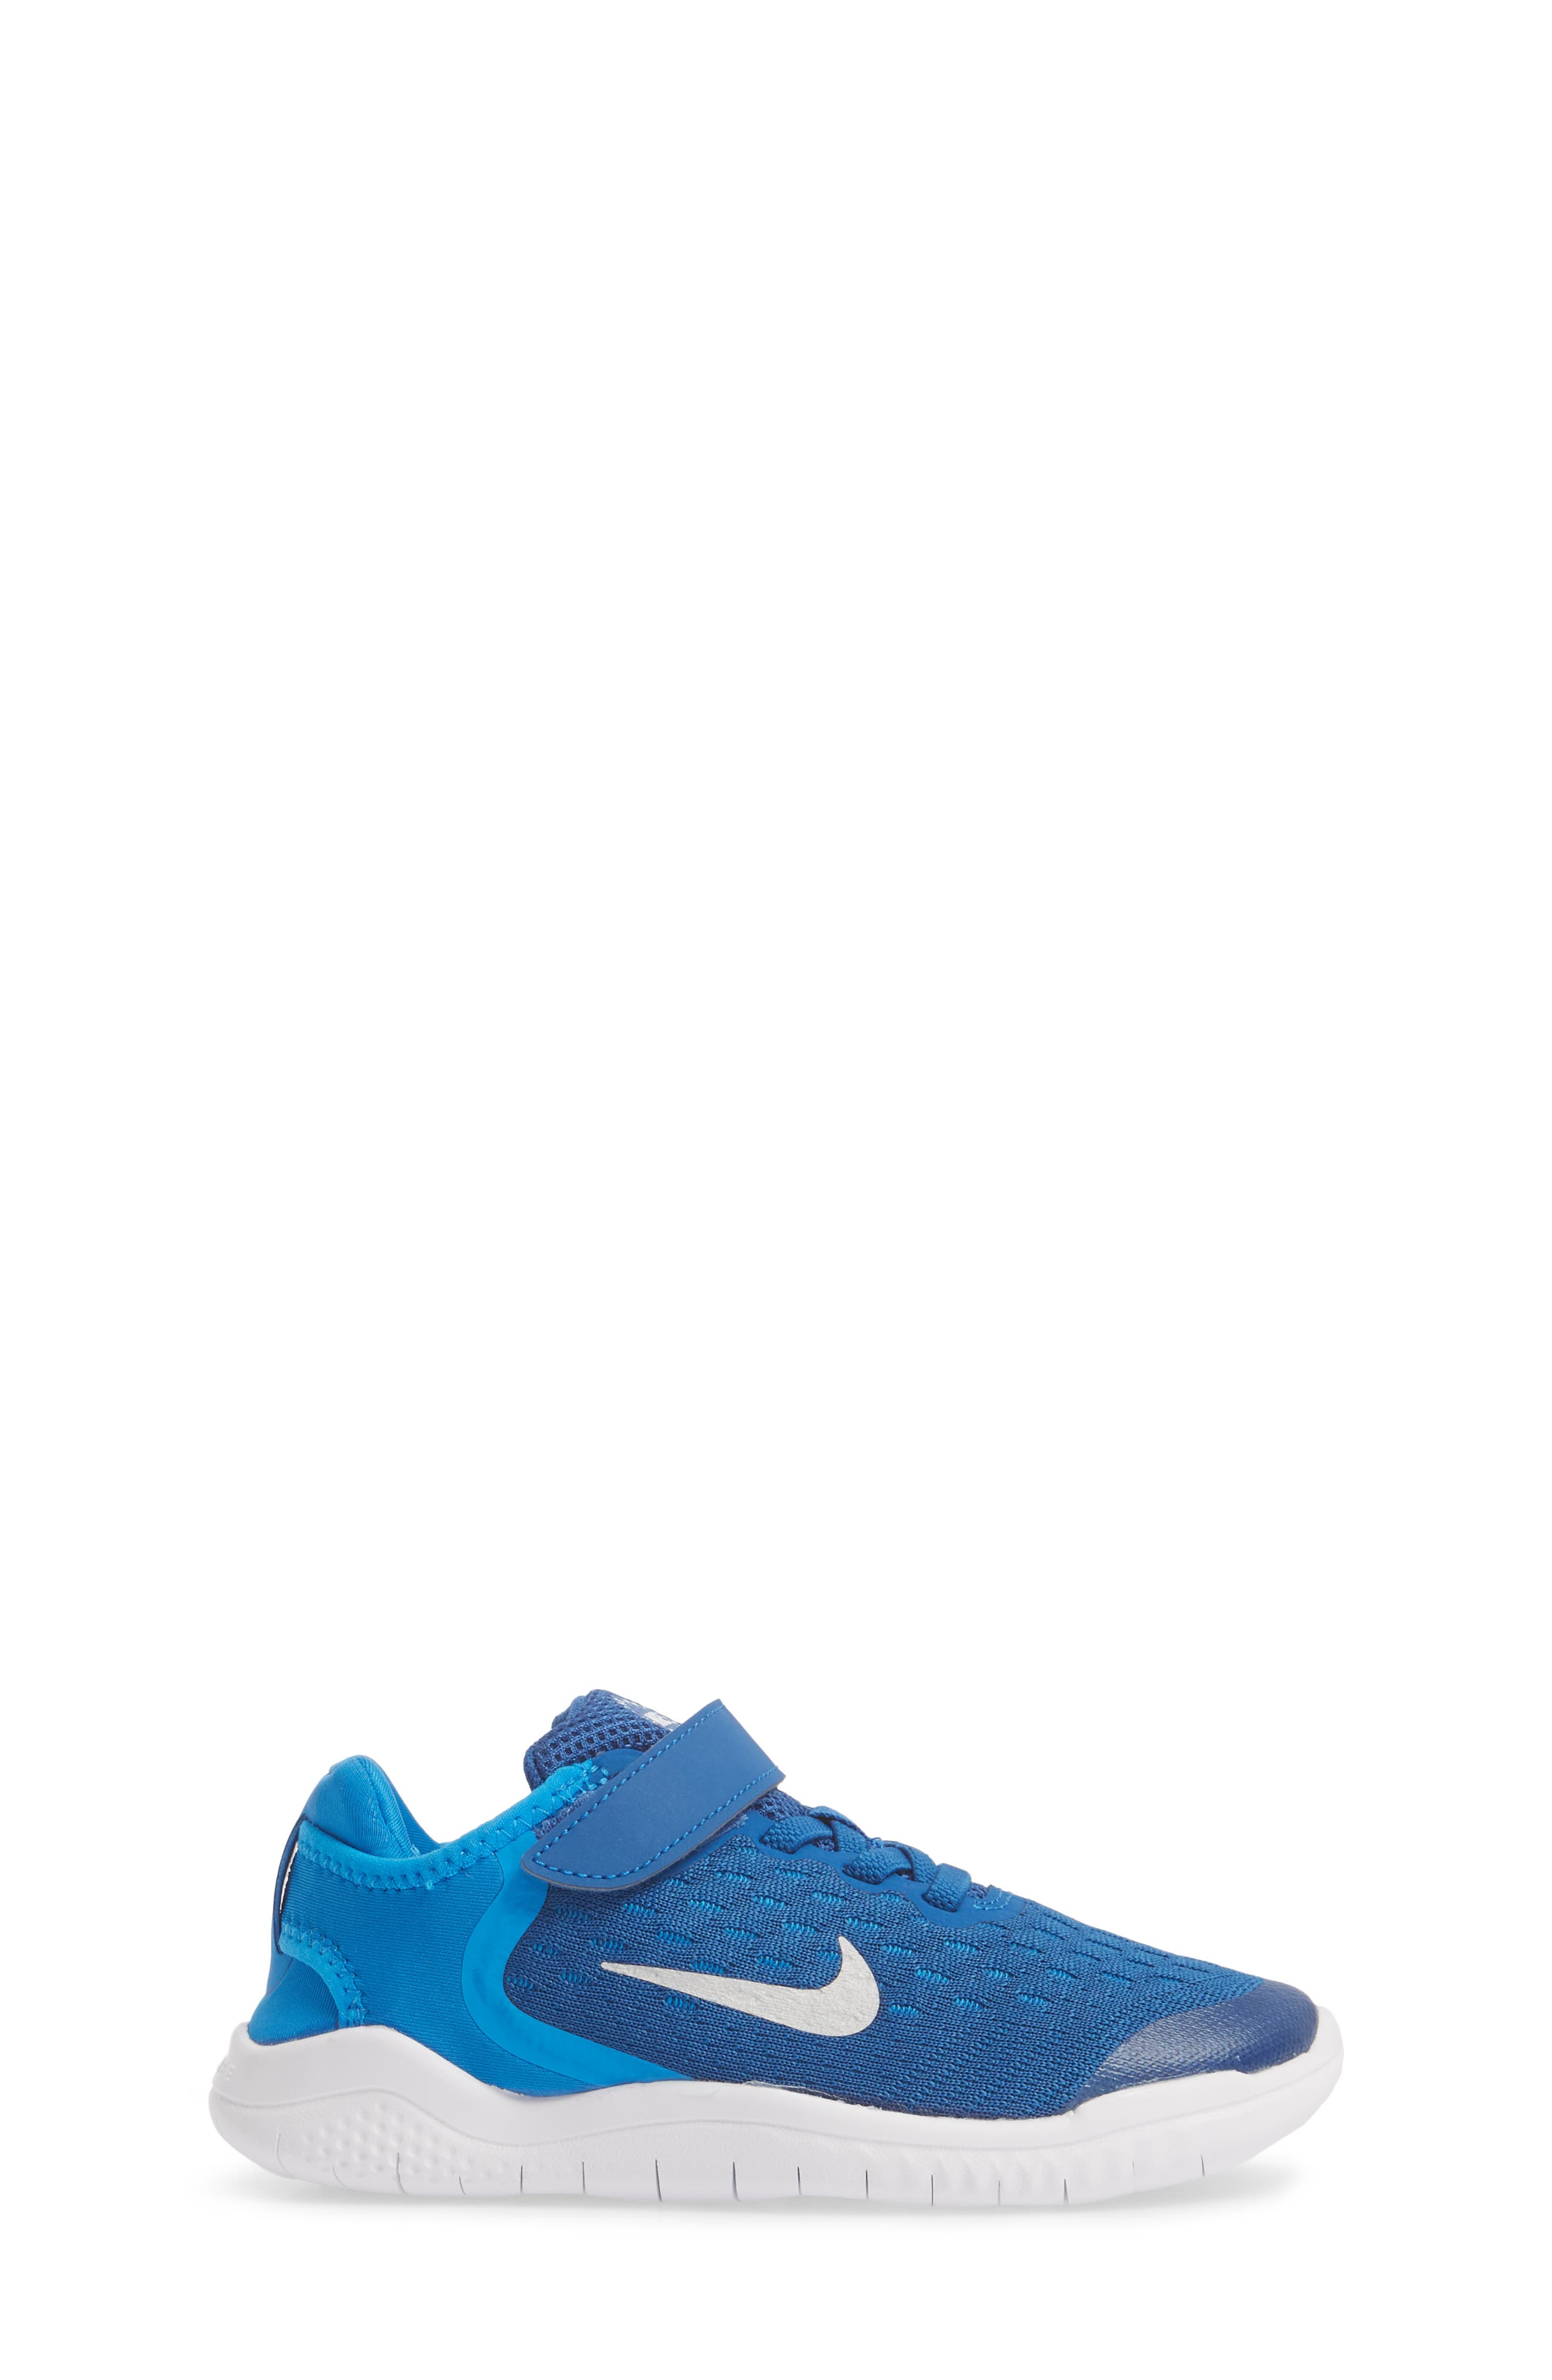 Free RN Running Shoe,                             Alternate thumbnail 45, color,